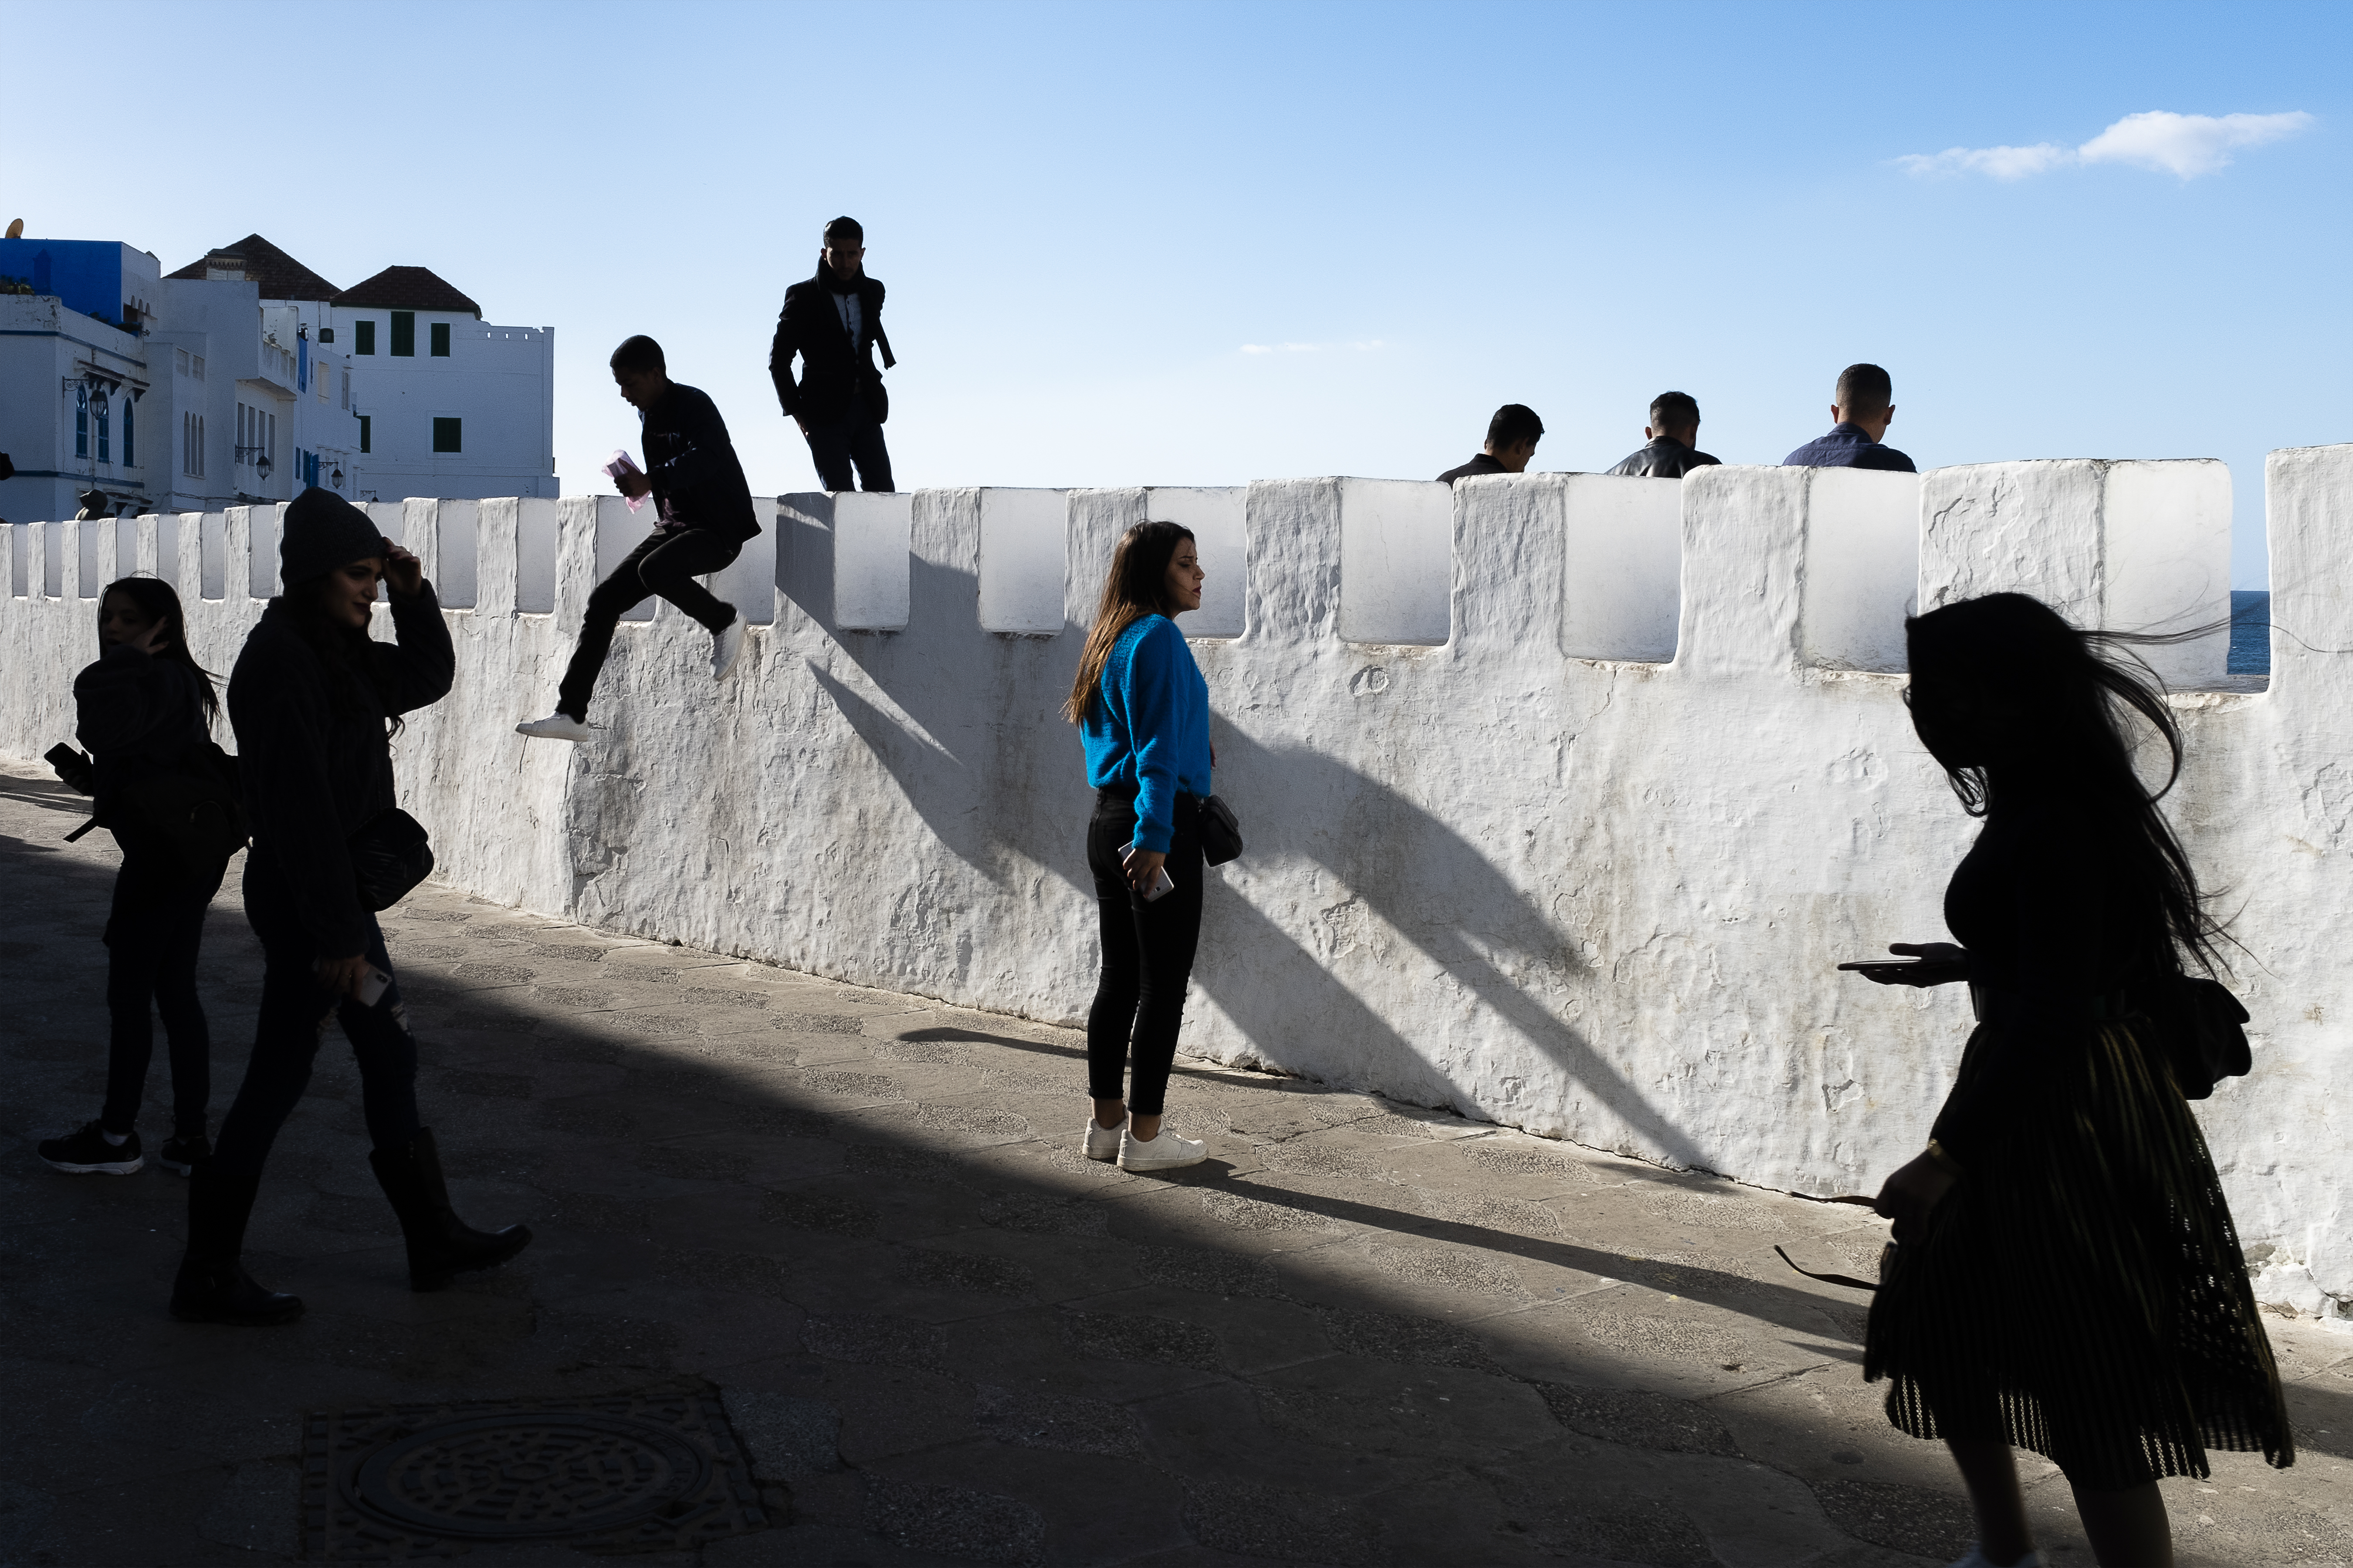 """Artist comments: """"A woman looks peacefully into the abyss of the ocean in a still and contemplative glance while bathed in early evening sunlight as people around her create movement in all directions in Asilah, Morocco."""""""